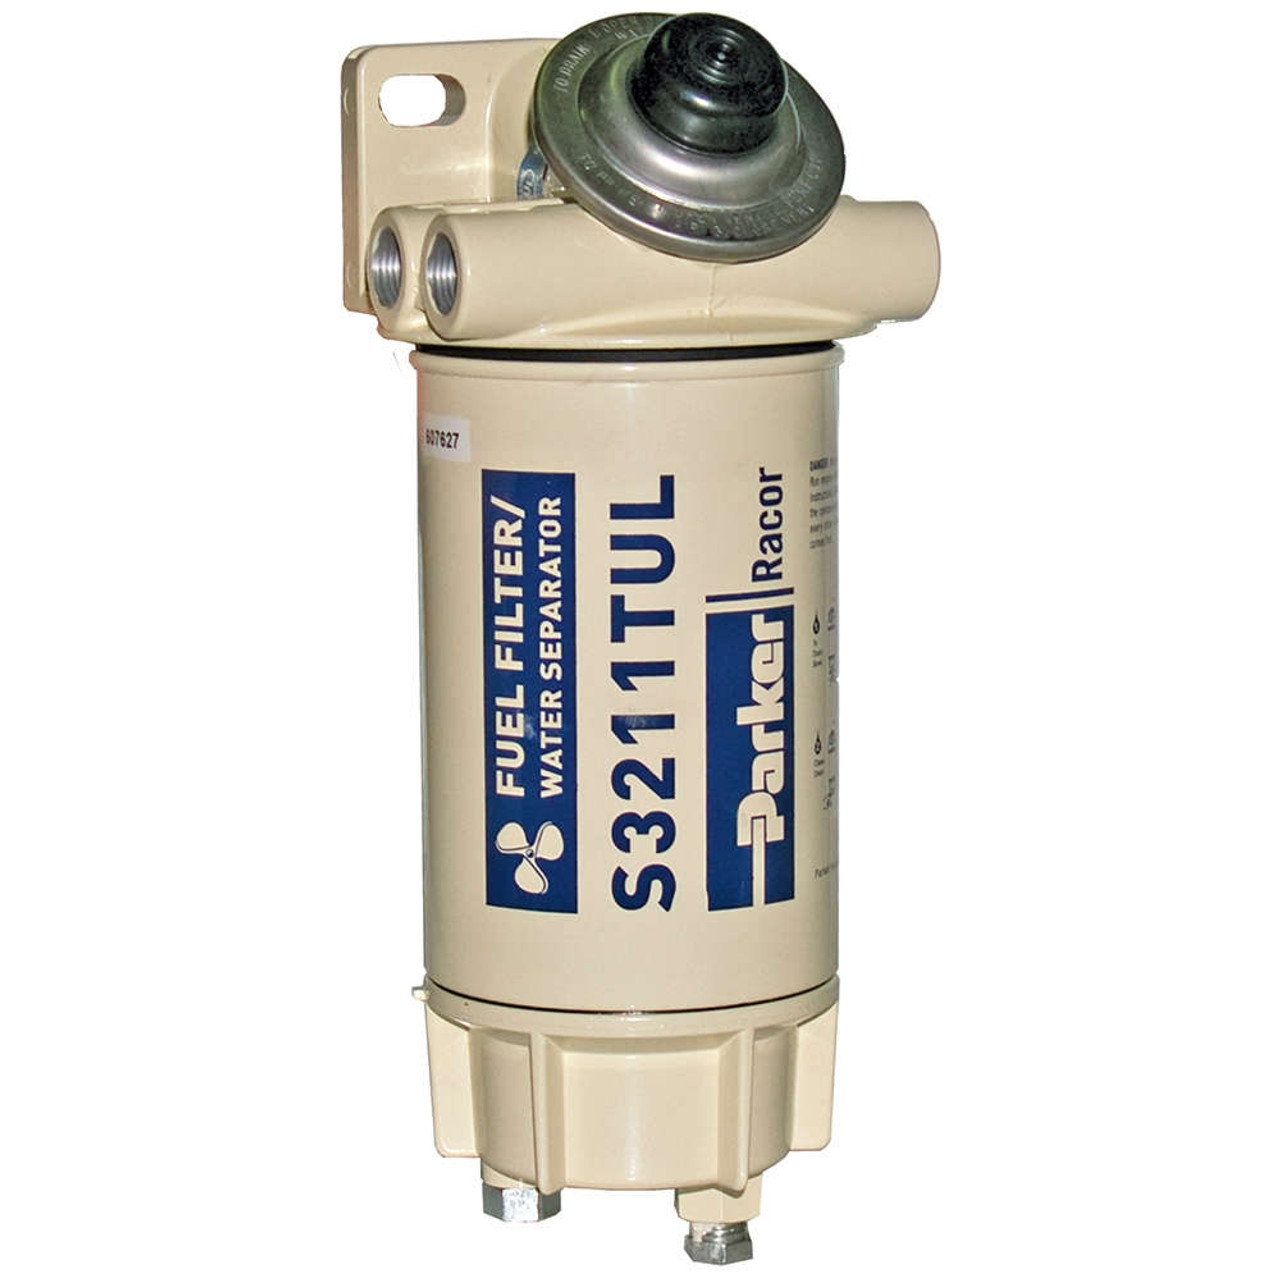 racor aquabloc marine 3 8 in 60 gph spin on diesel fuel filter60 gph spin on diesel fuel filter water separator assembly 6 qty john m ellsworth co inc